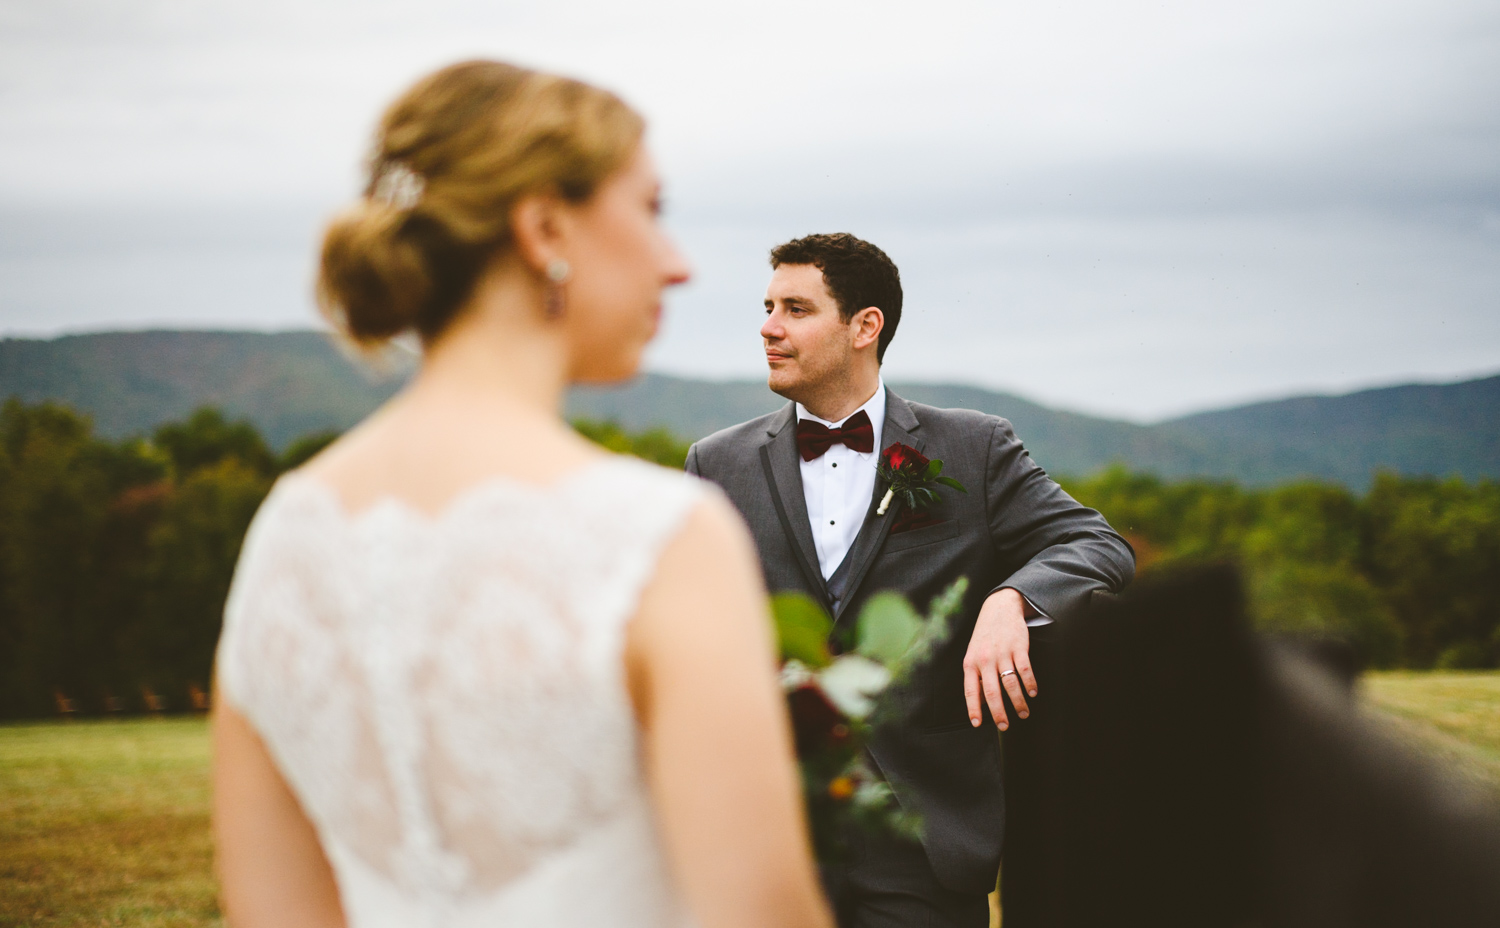 006 - wedding portrait focus on groom with bride out of focus in foreground.jpg